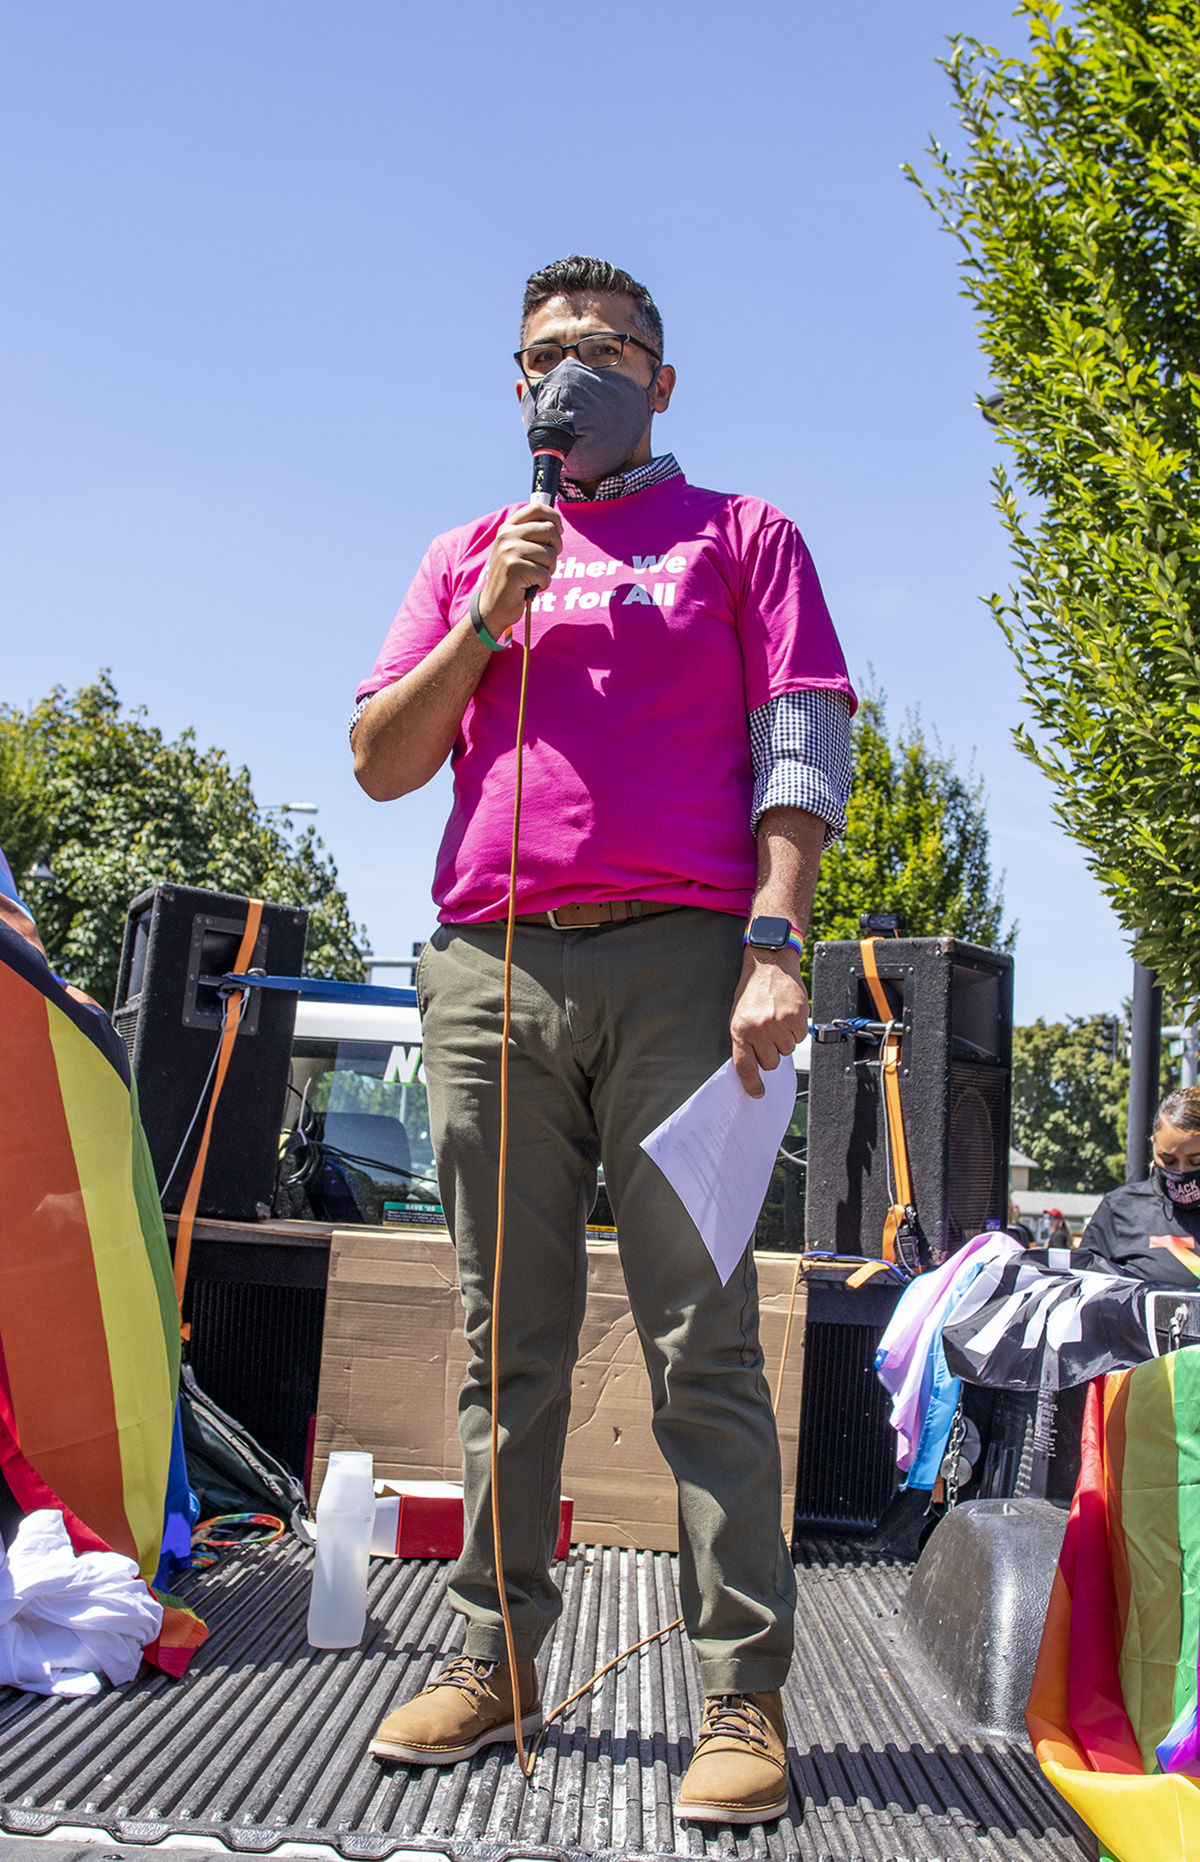 Planned Parenthood Coordinator Omar Al Rais speaking to demonstrators in front of the courthouse. Approximately 200 people gathered in front of the federal courthouse at noon in Eugene, Oregon, on Saturday to celebrate and march for Black Trans Lives. The march, organized by local groups Black Unity and Eugene Pride, made its way through the streets of Eugene until arriving at Kiwanis/Skinner Butte Park. Once at the park marchers stopped to enjoy food, music and demonstrations held by the march organizers. Photo by Payton Bruni